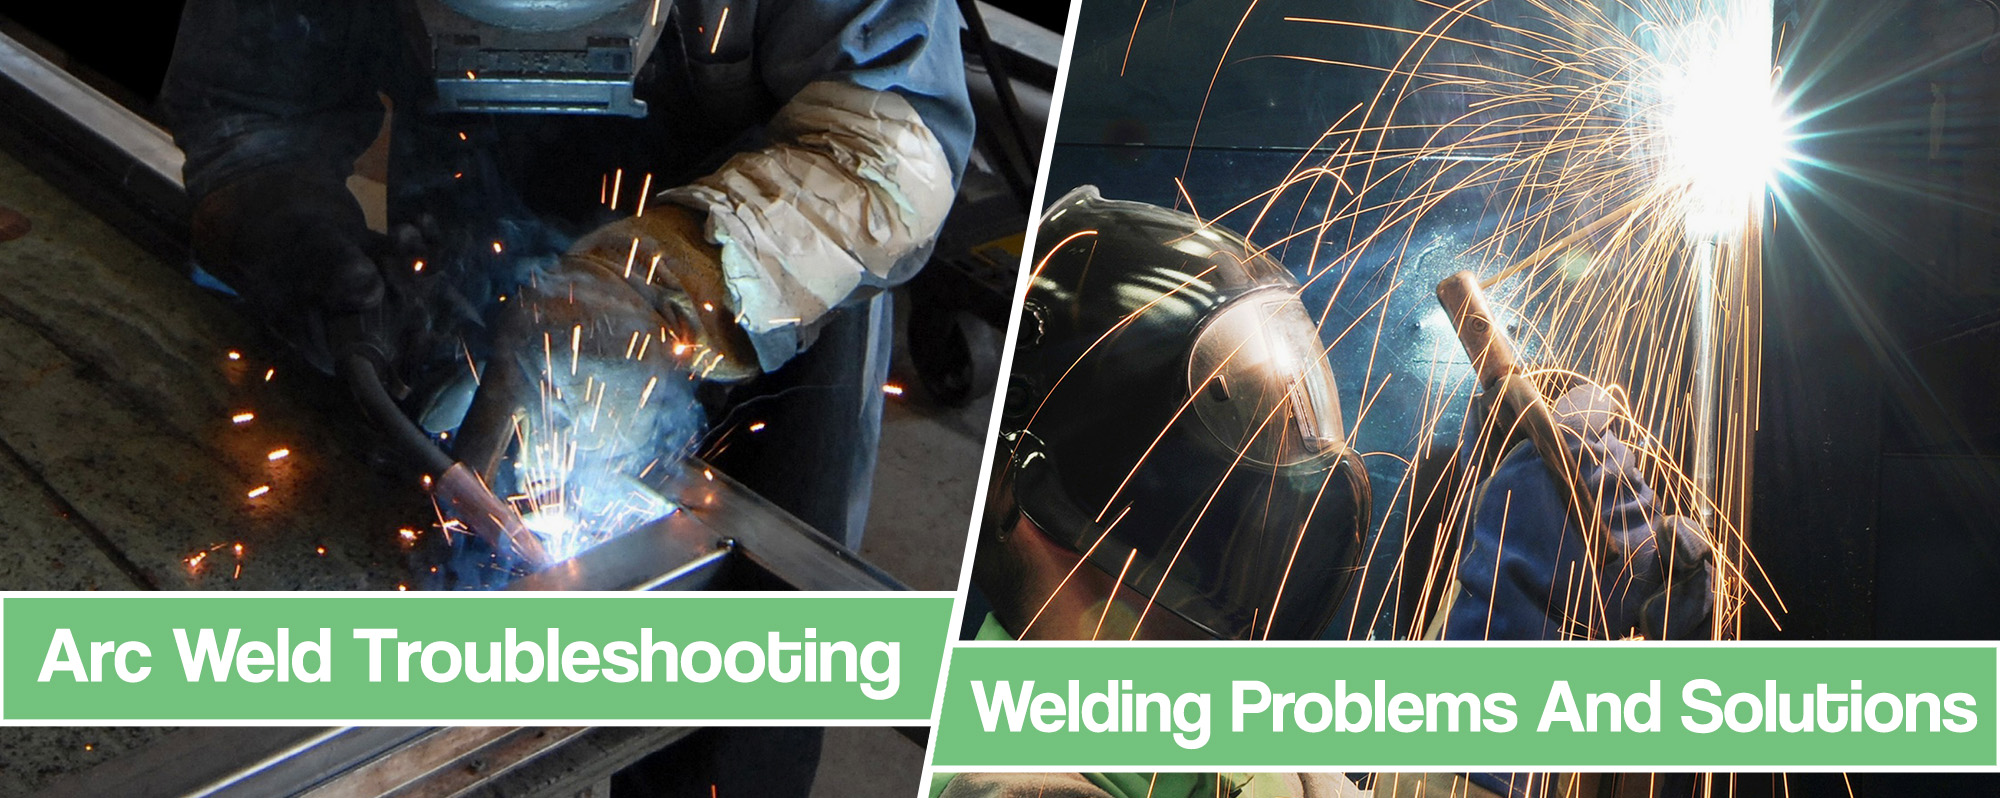 Arc Weld Troubleshooting feature image